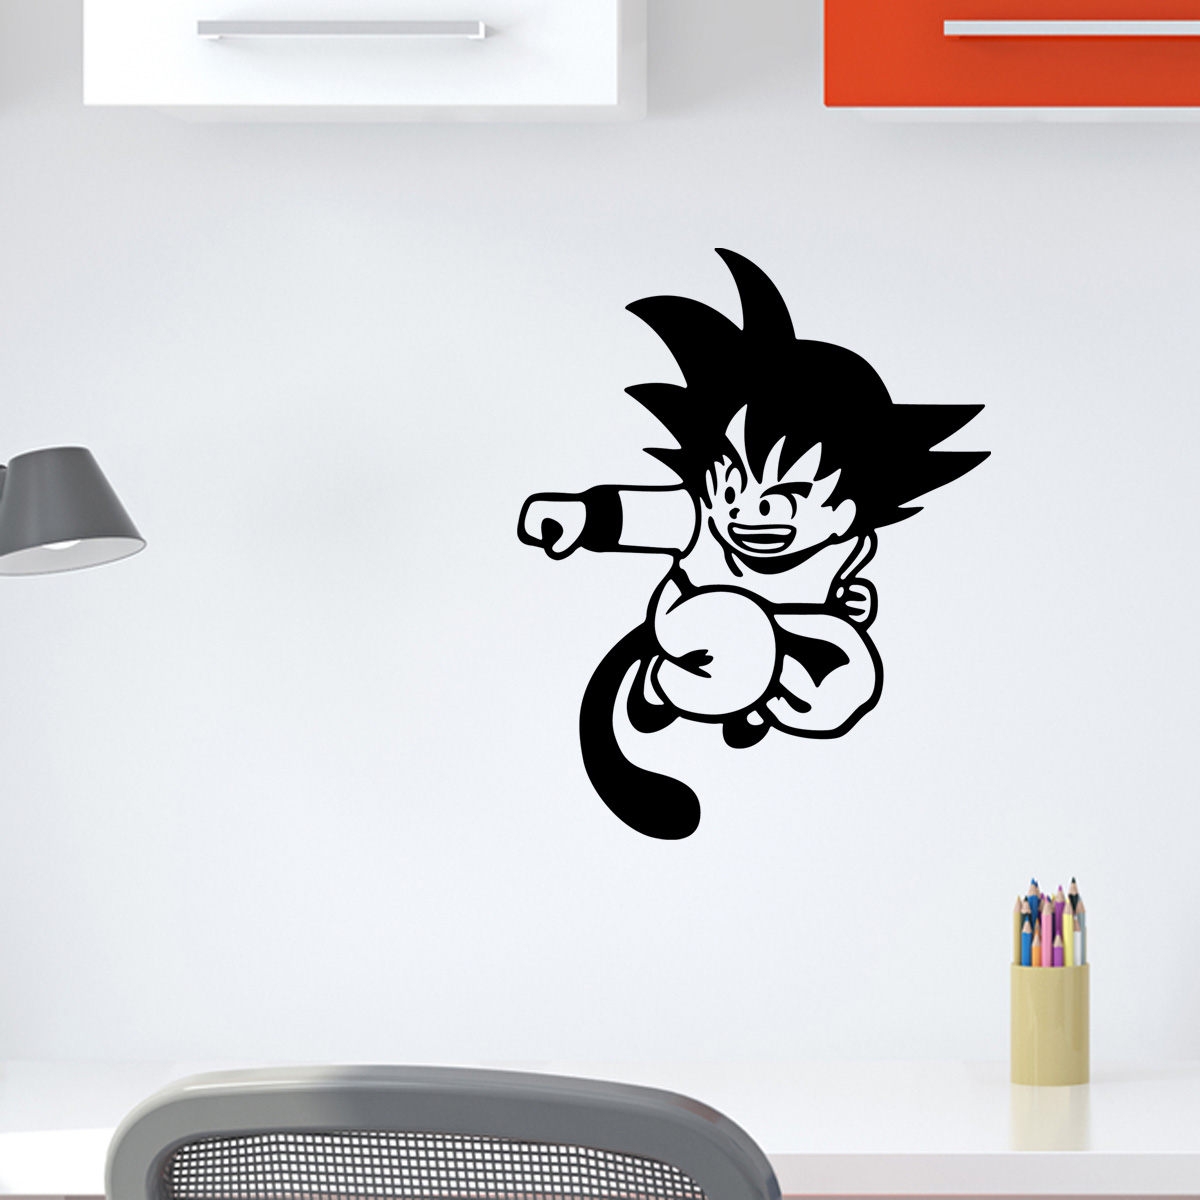 stickers muraux pour les enfants sticker dragon ball. Black Bedroom Furniture Sets. Home Design Ideas